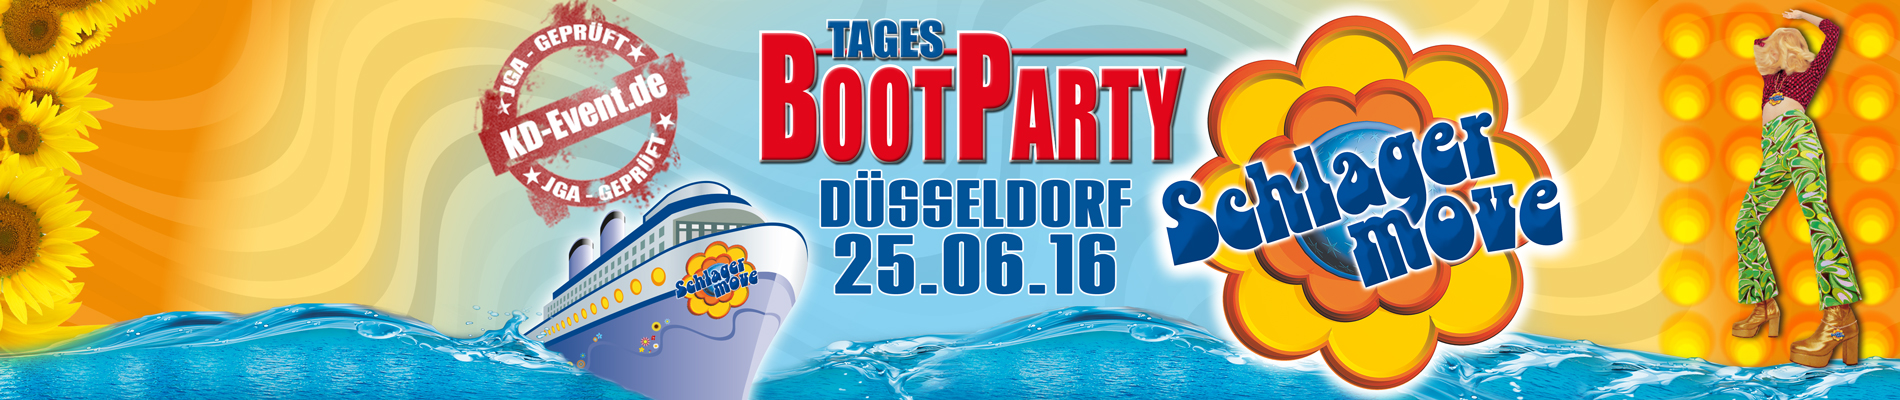 Schlagermove Tages-Bootparty 25.06.2016